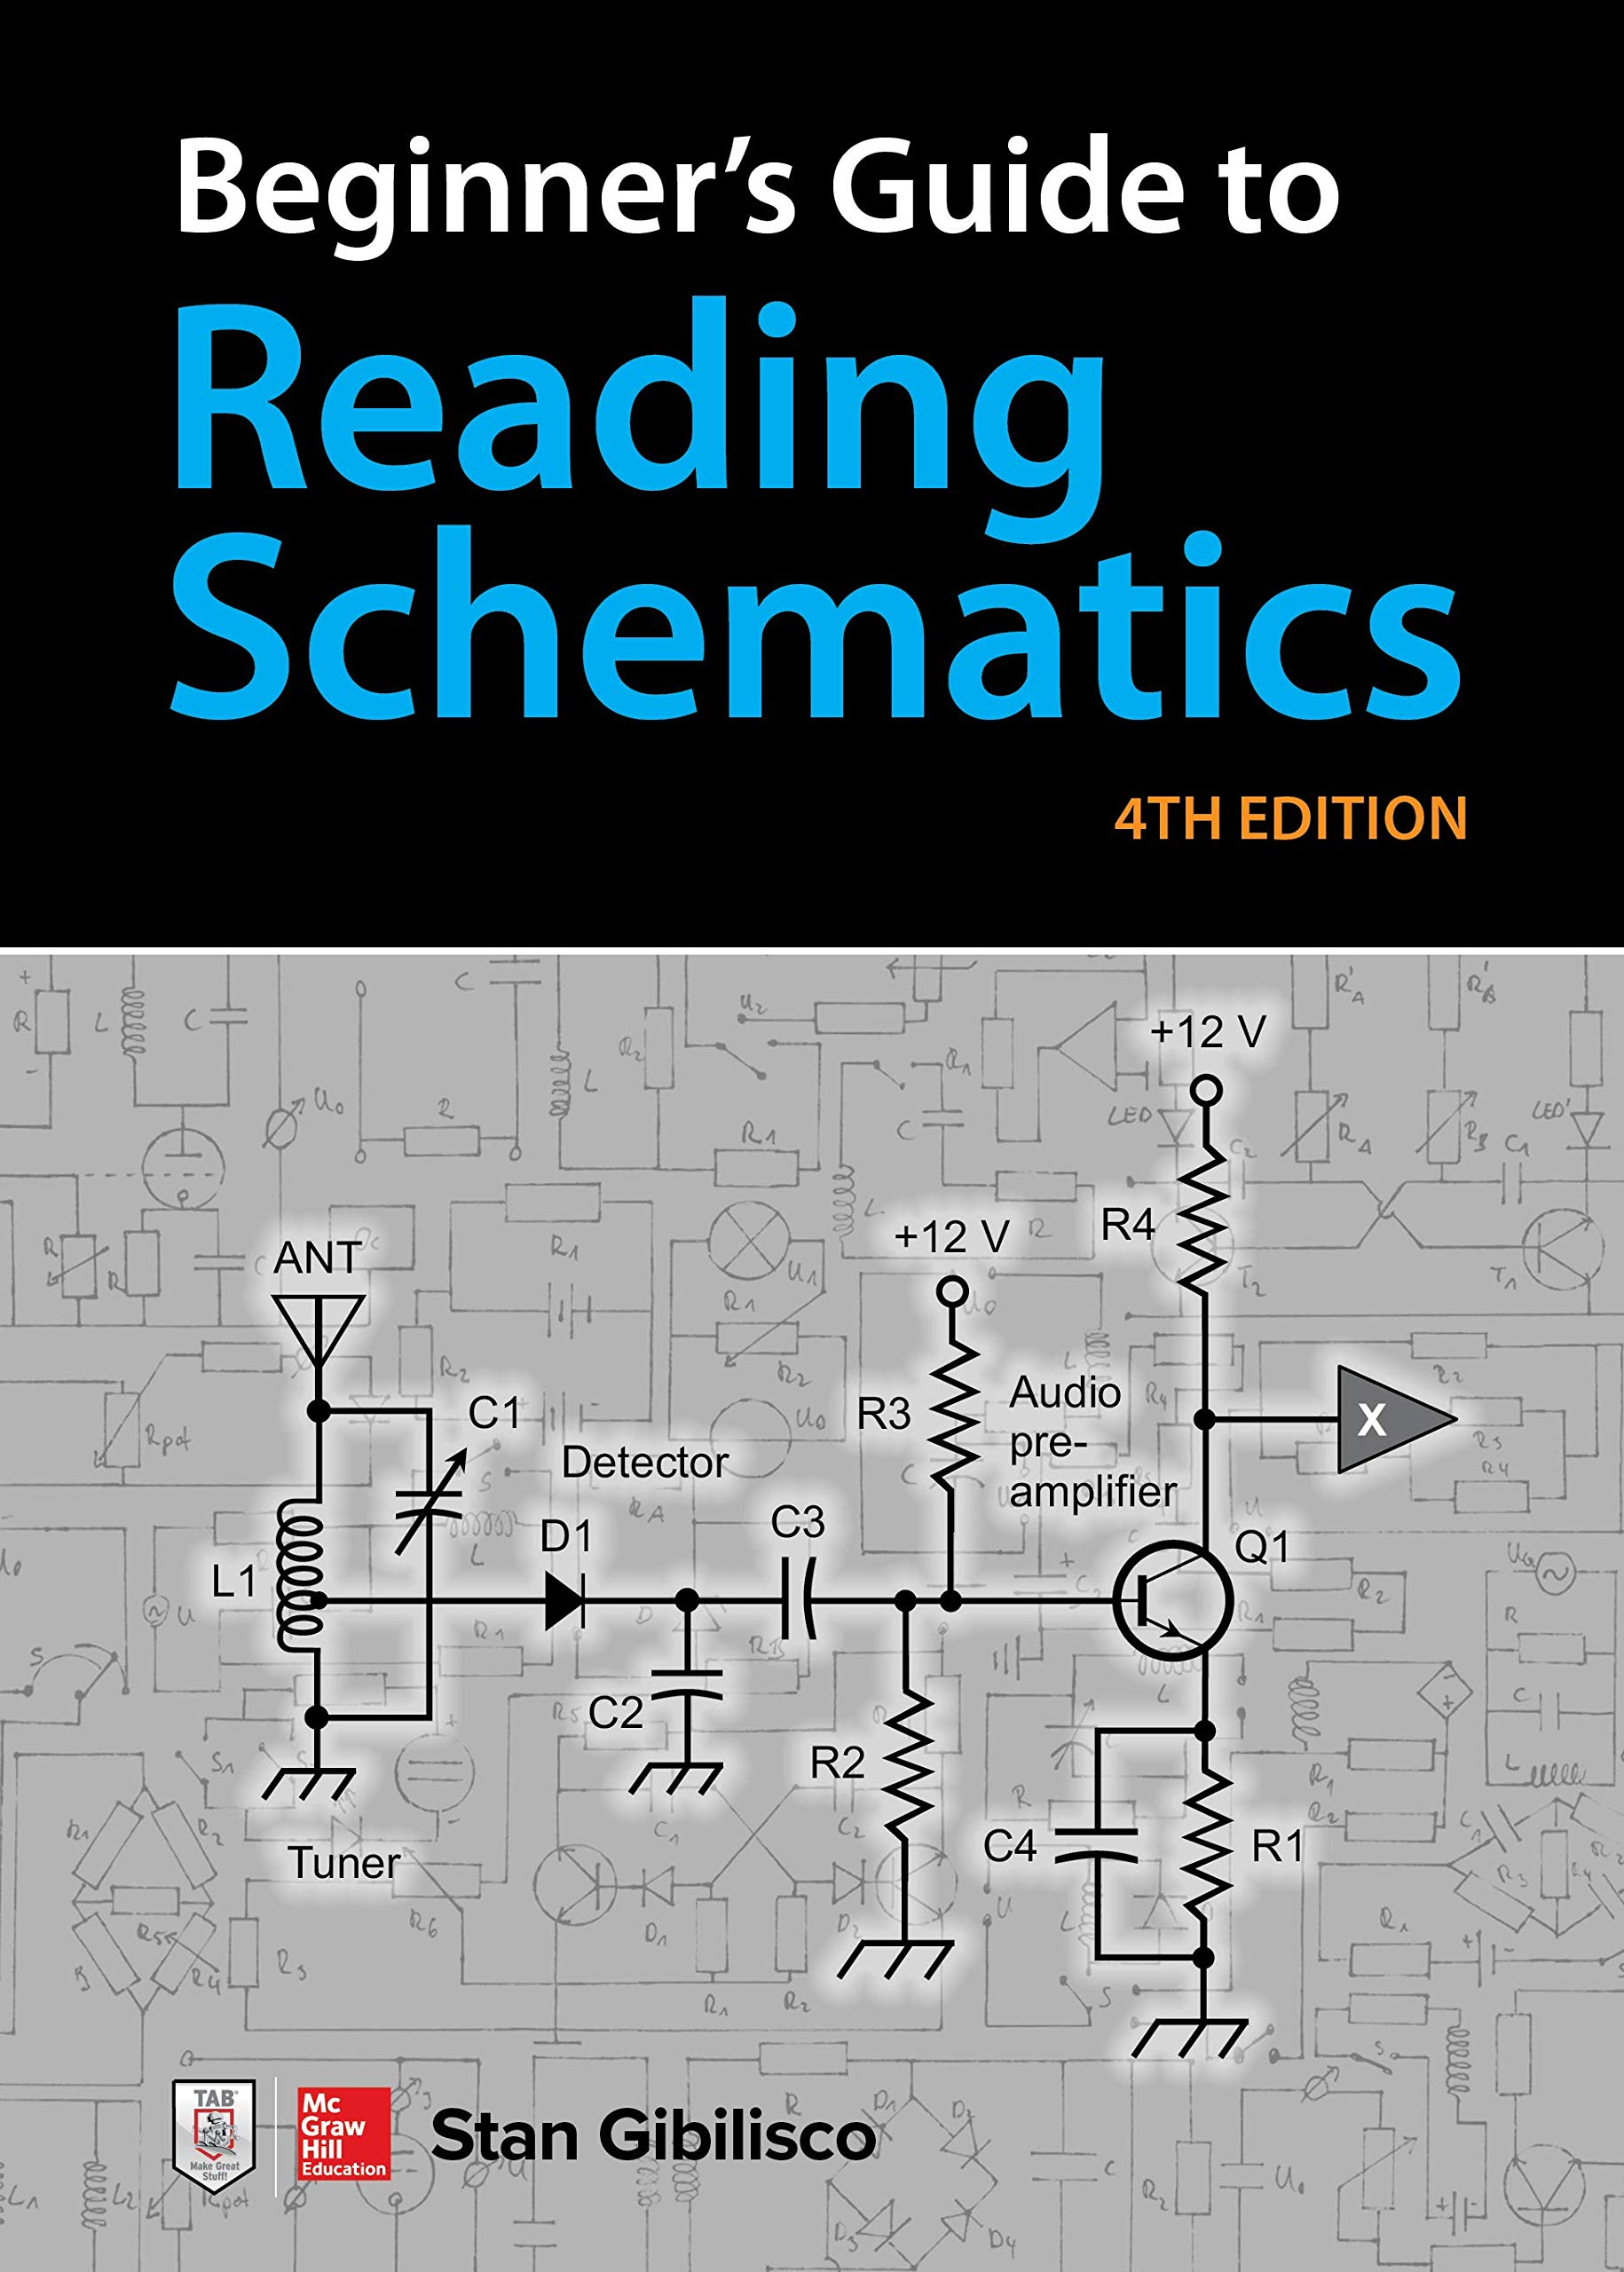 Beginner's Guide to Reading Schematics Fourth Edition